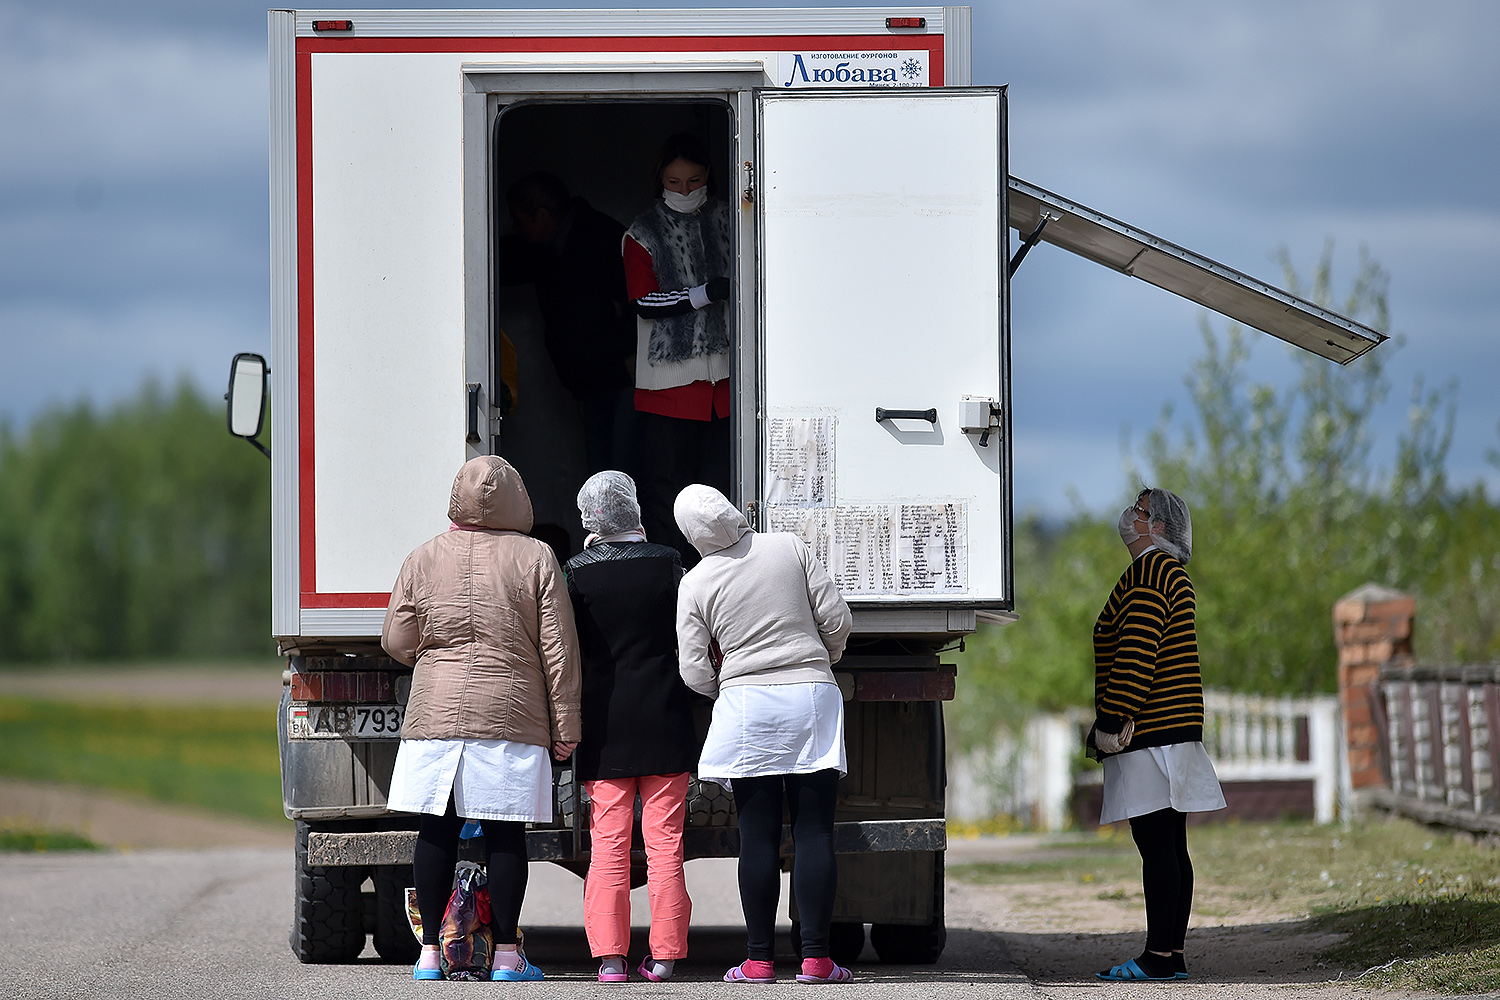 Shelter employees buy food for their patients from a truck transformed into a mobile shop in the village of Kreva, Belarus, northwest of Minsk, on May 14. SERGEI GAPON/AFP via Getty Images